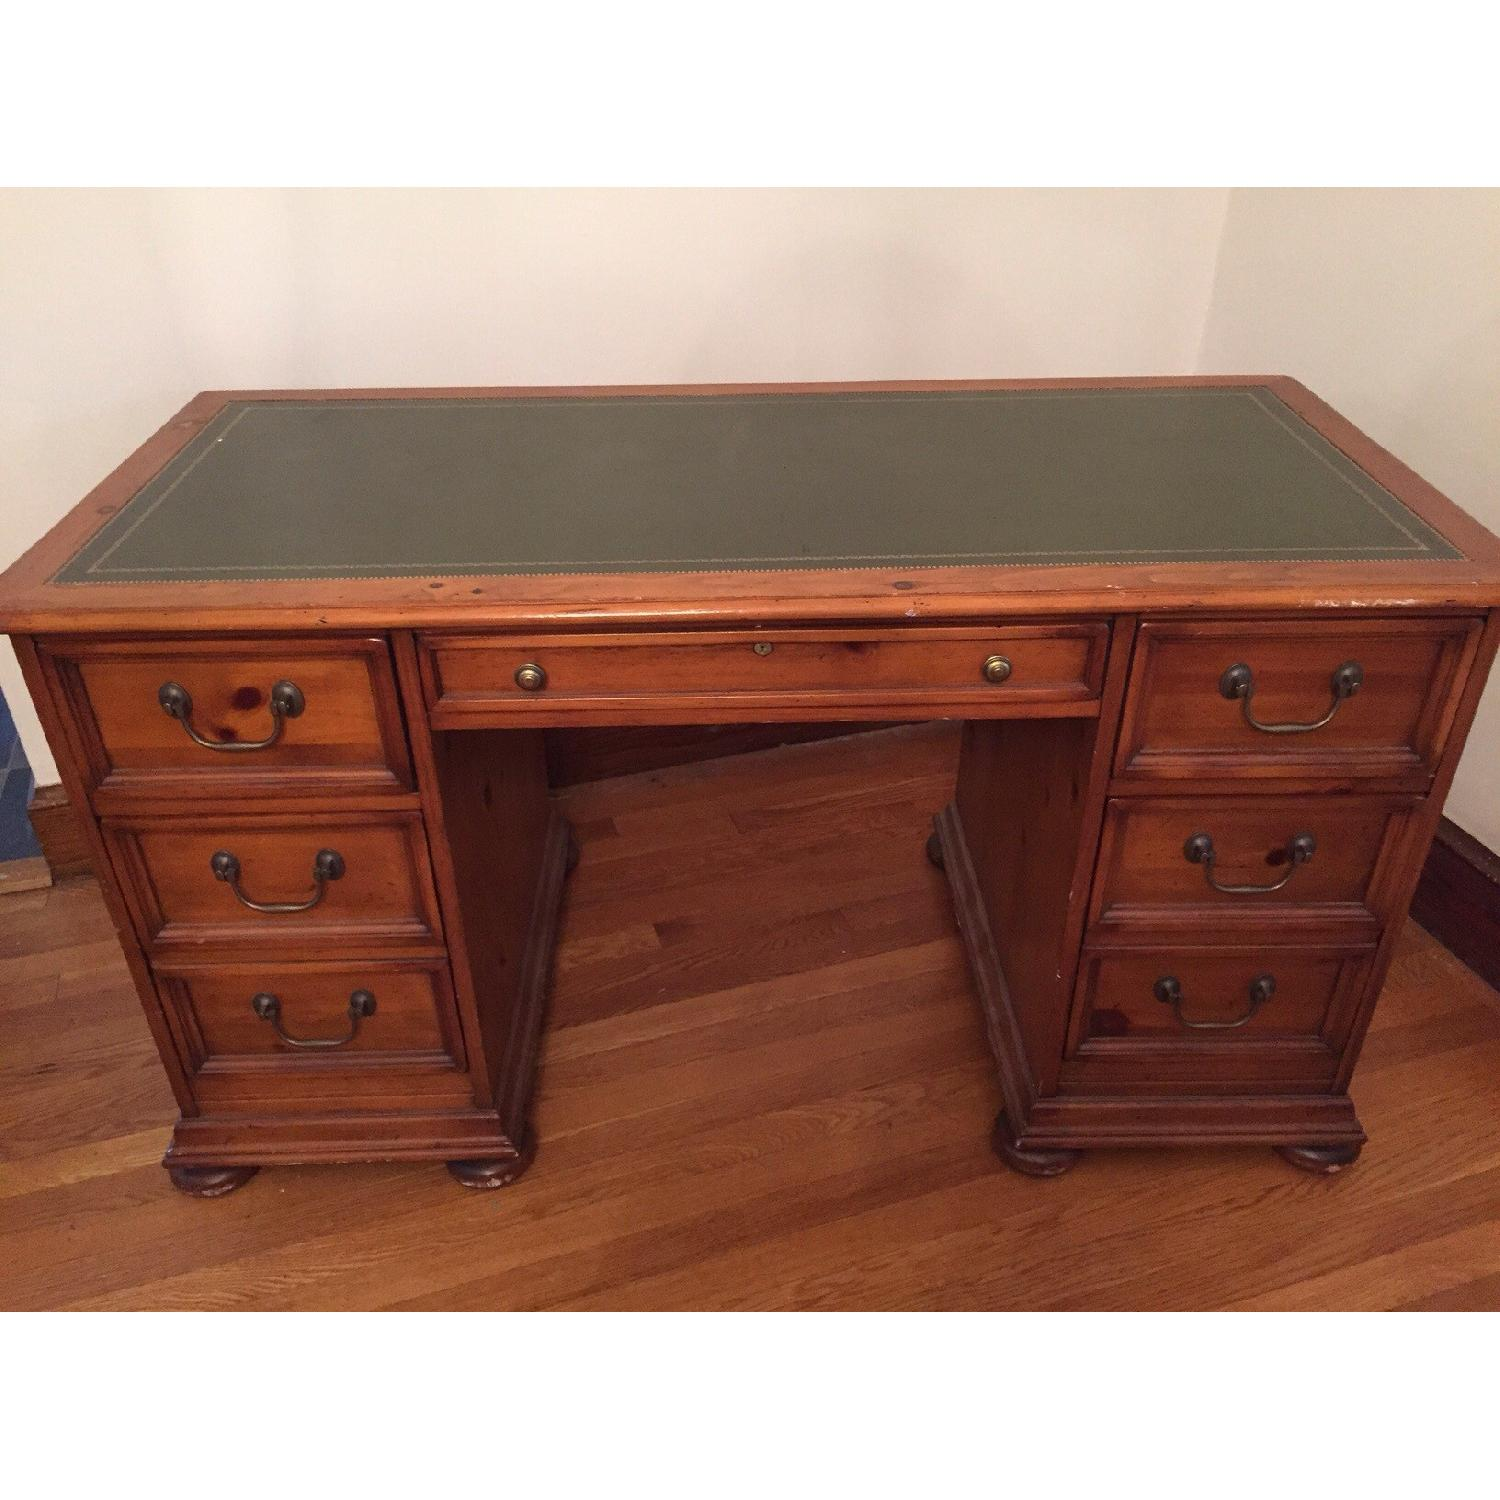 Sligh Desk with Leather Top - image-1